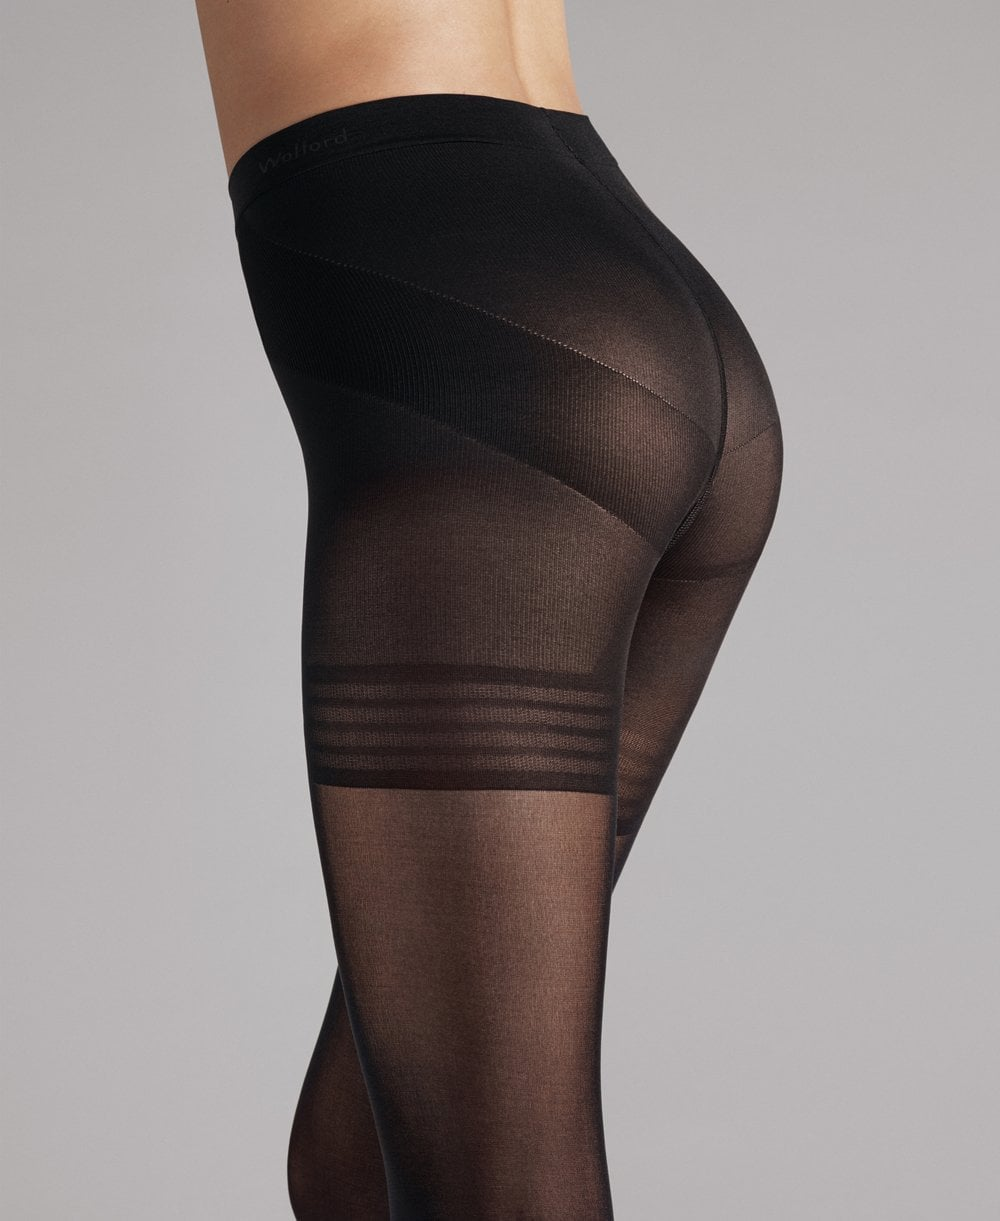 595dbaed0f Wolford Power Shape 50 Control Top Tights - Tights from luxury-legs ...